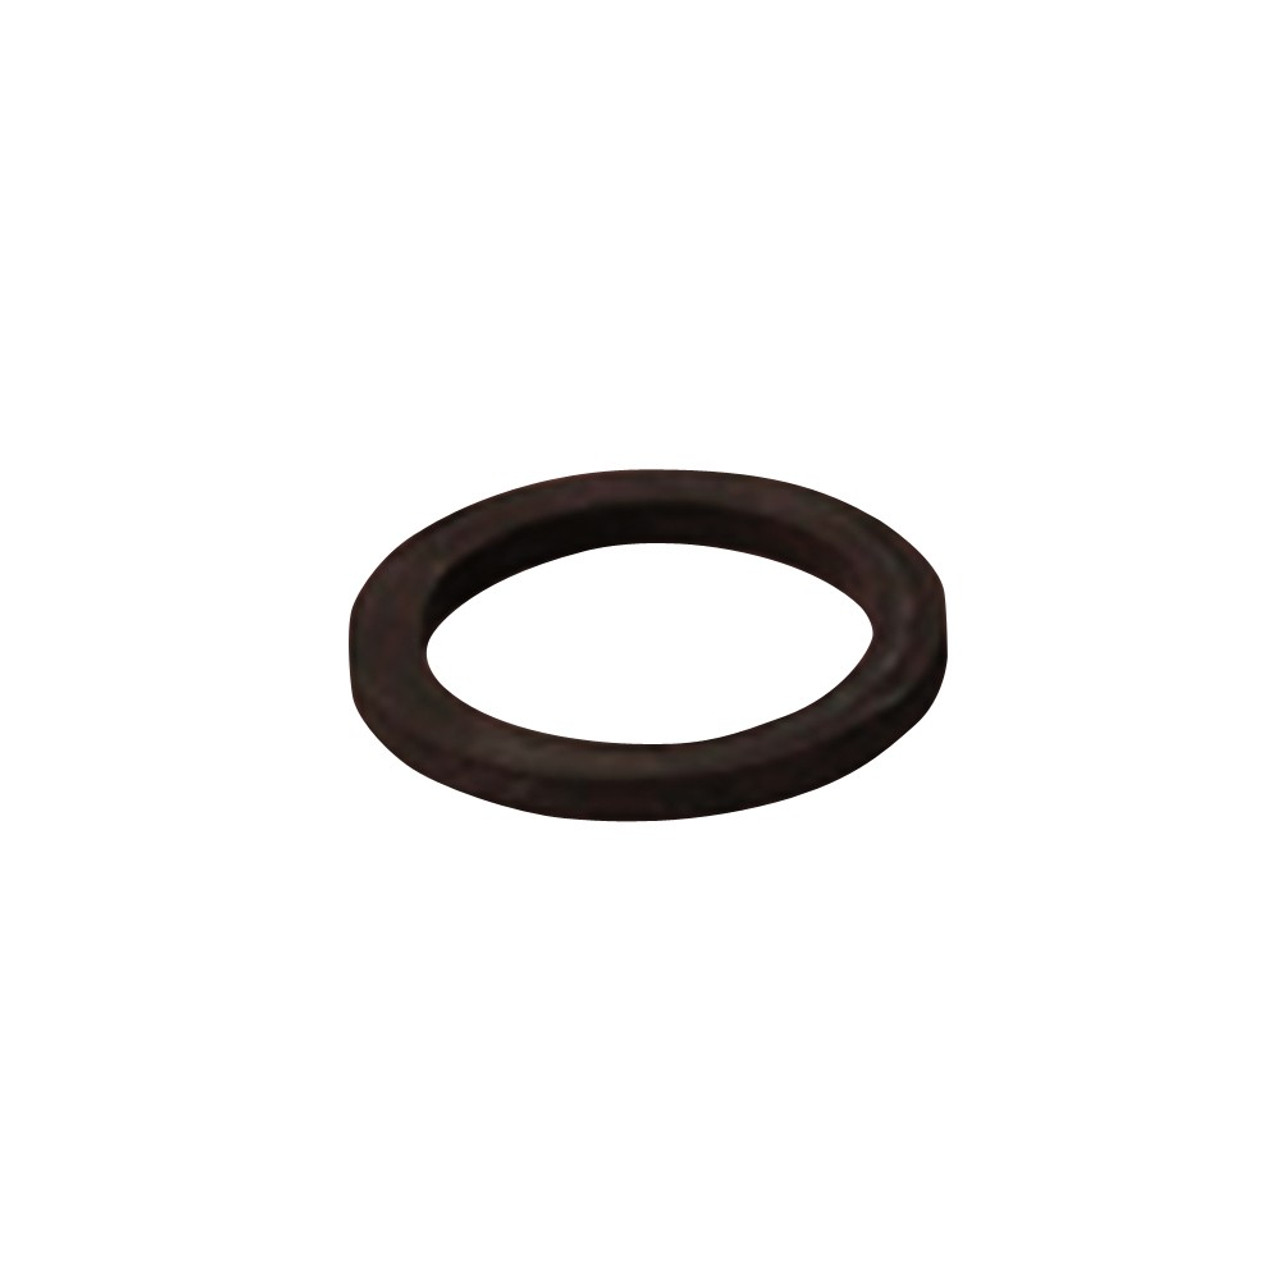 Imer Spare Rubber Material Hose Seal Gasket For 50dia Hoses